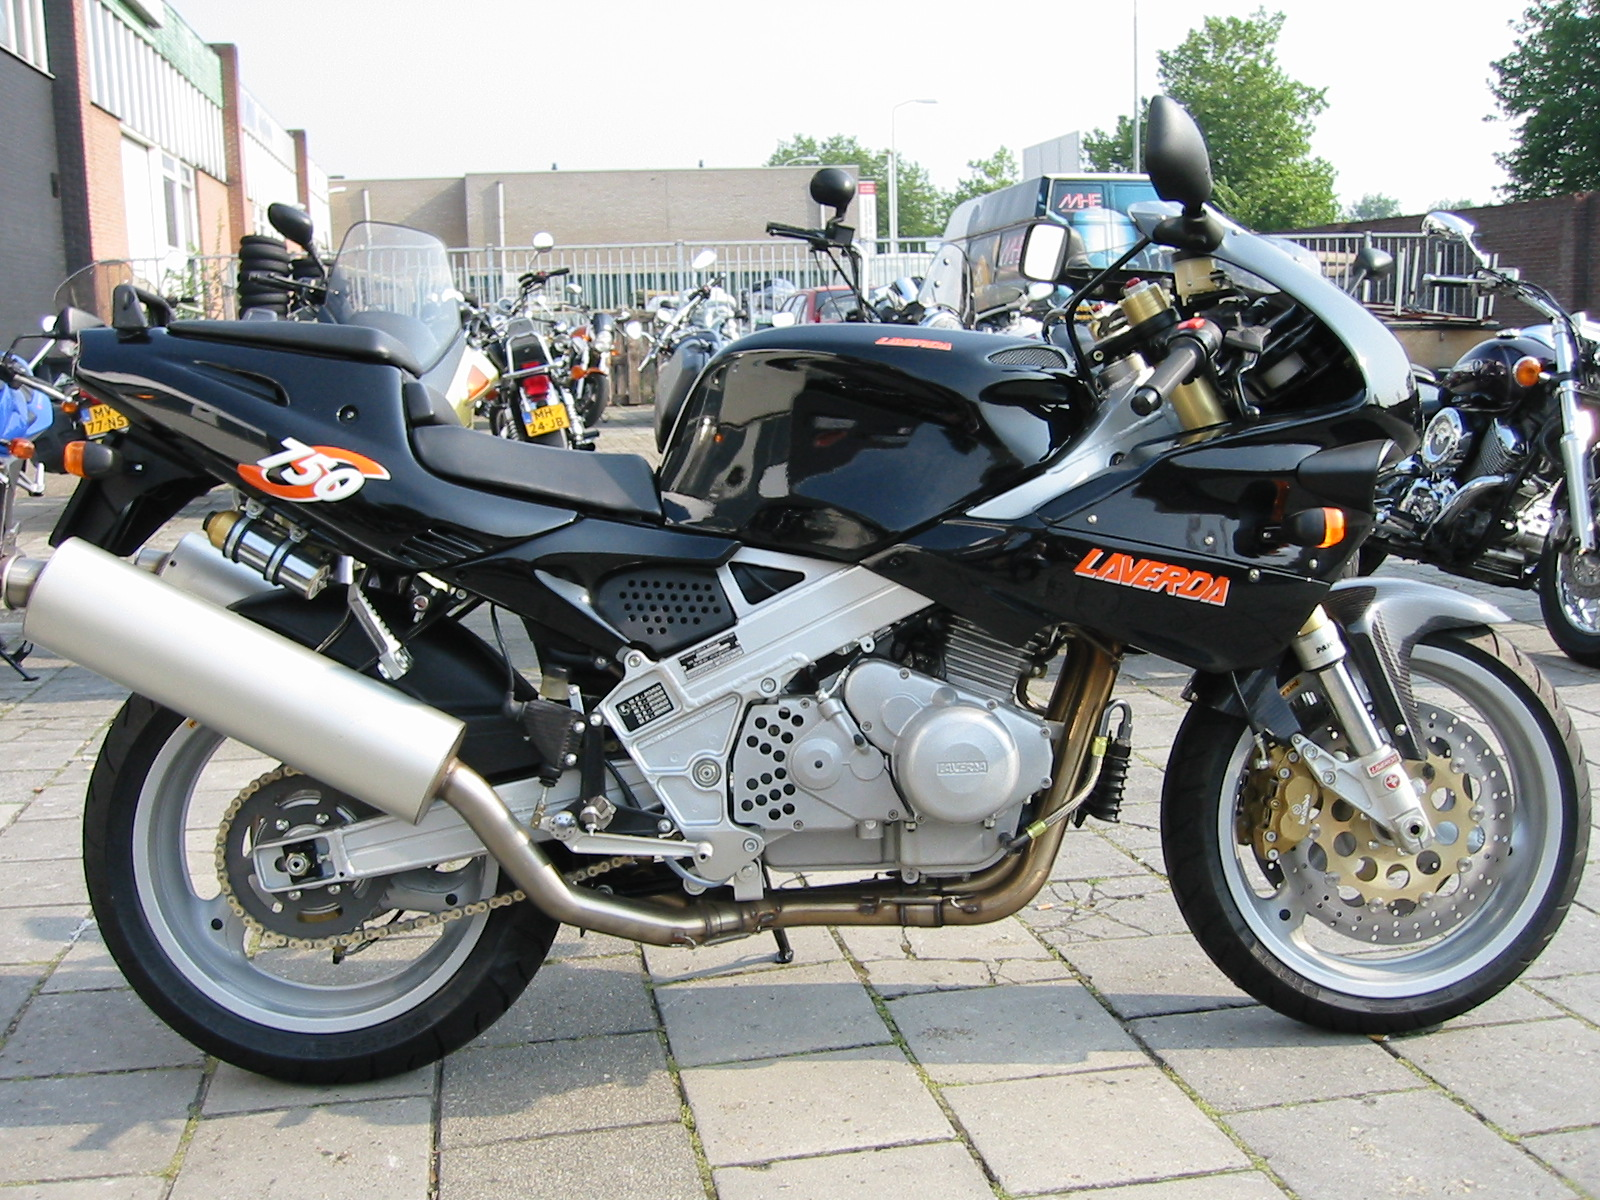 Laverda 750 Ghost Strike images #101744